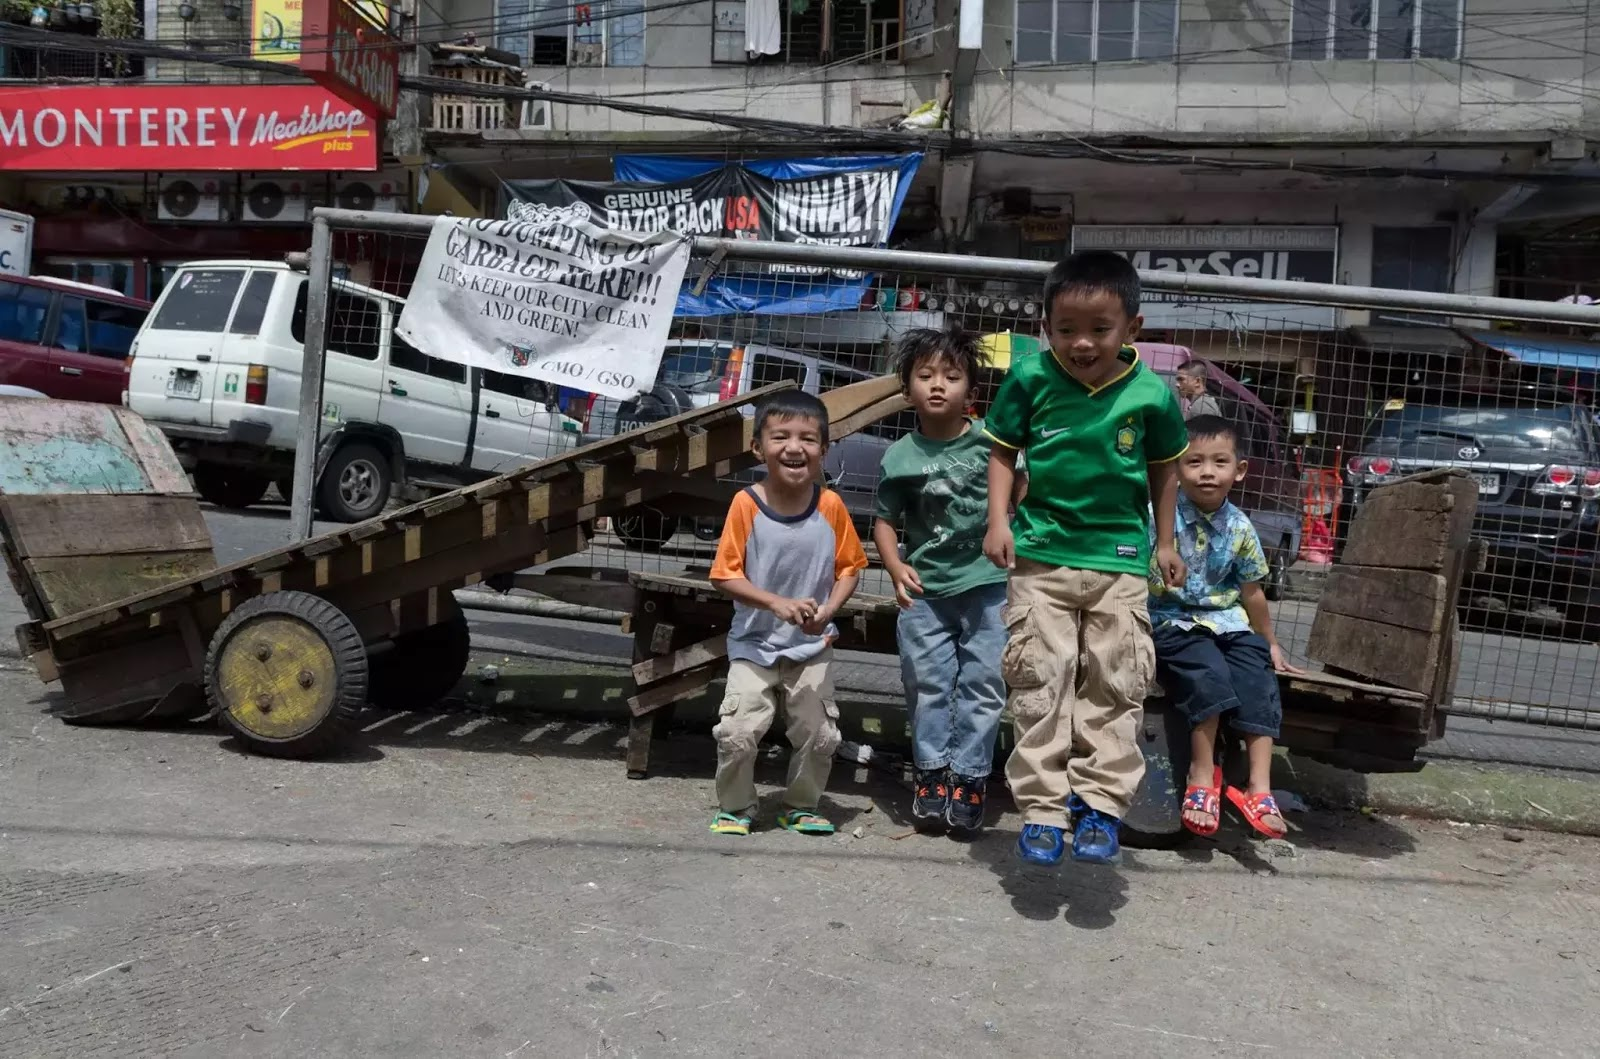 Baguio City Market Porter Carts and Children Cordillera Administrative Region Philippines